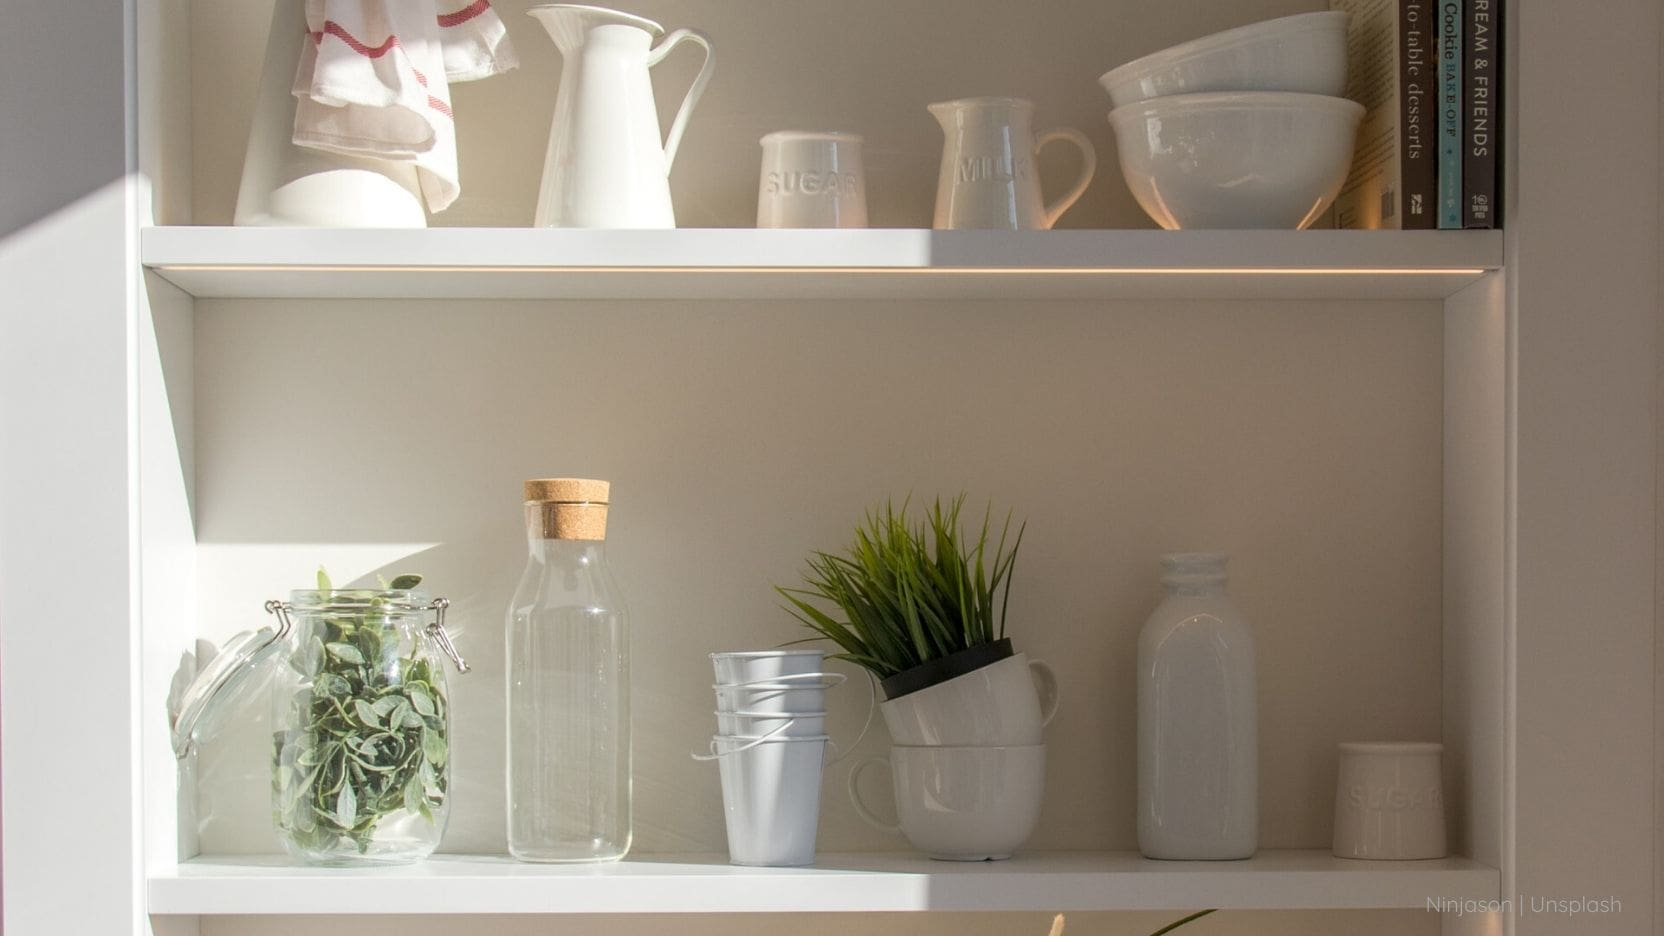 7 ways to recycle commonly used household items